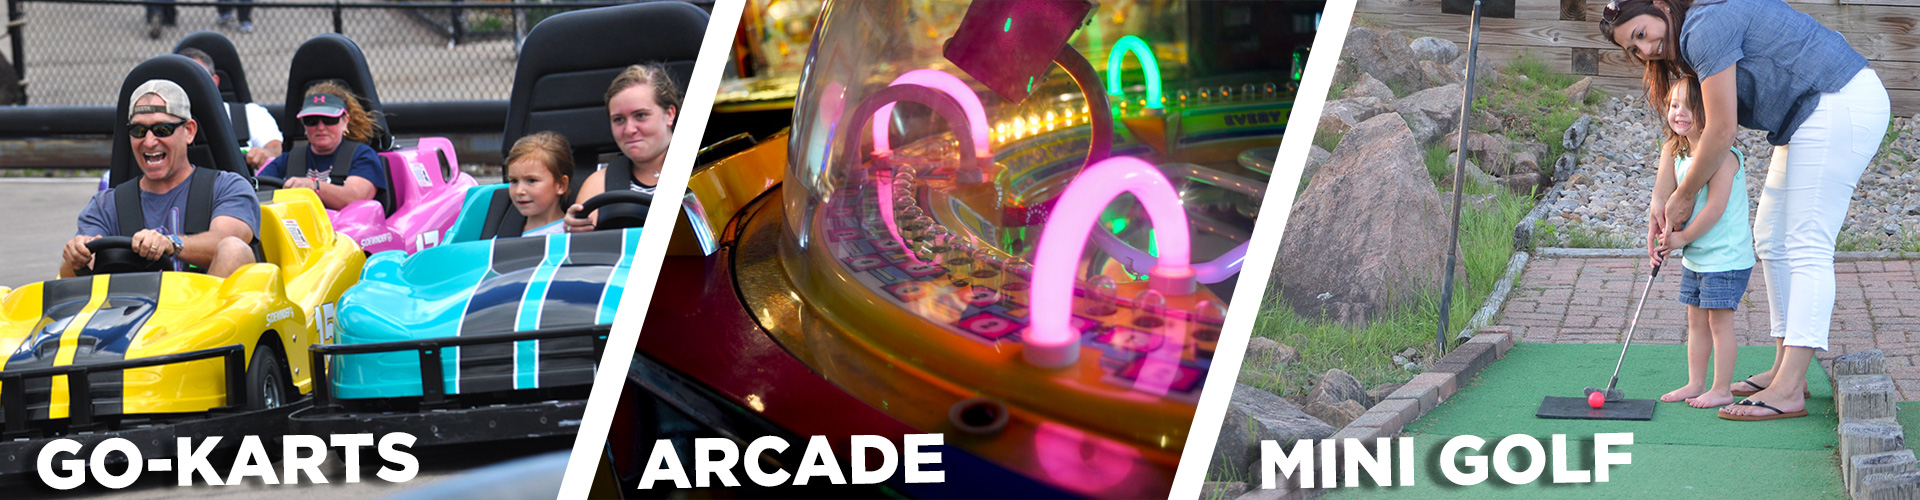 picture of go karts arcade and mili golf